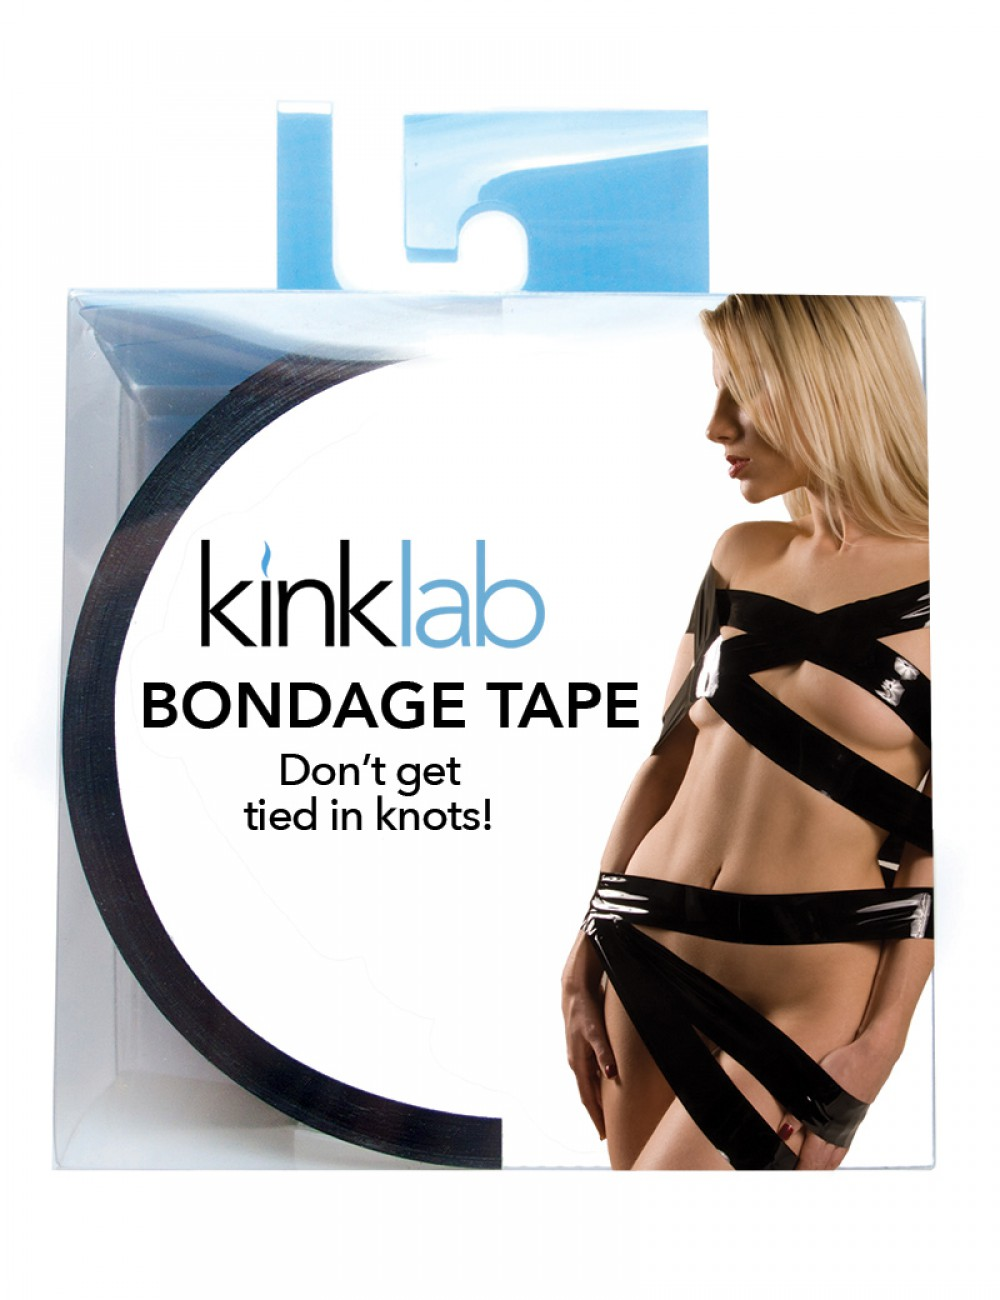 KinkLab Bondage Tape, Female Packaging